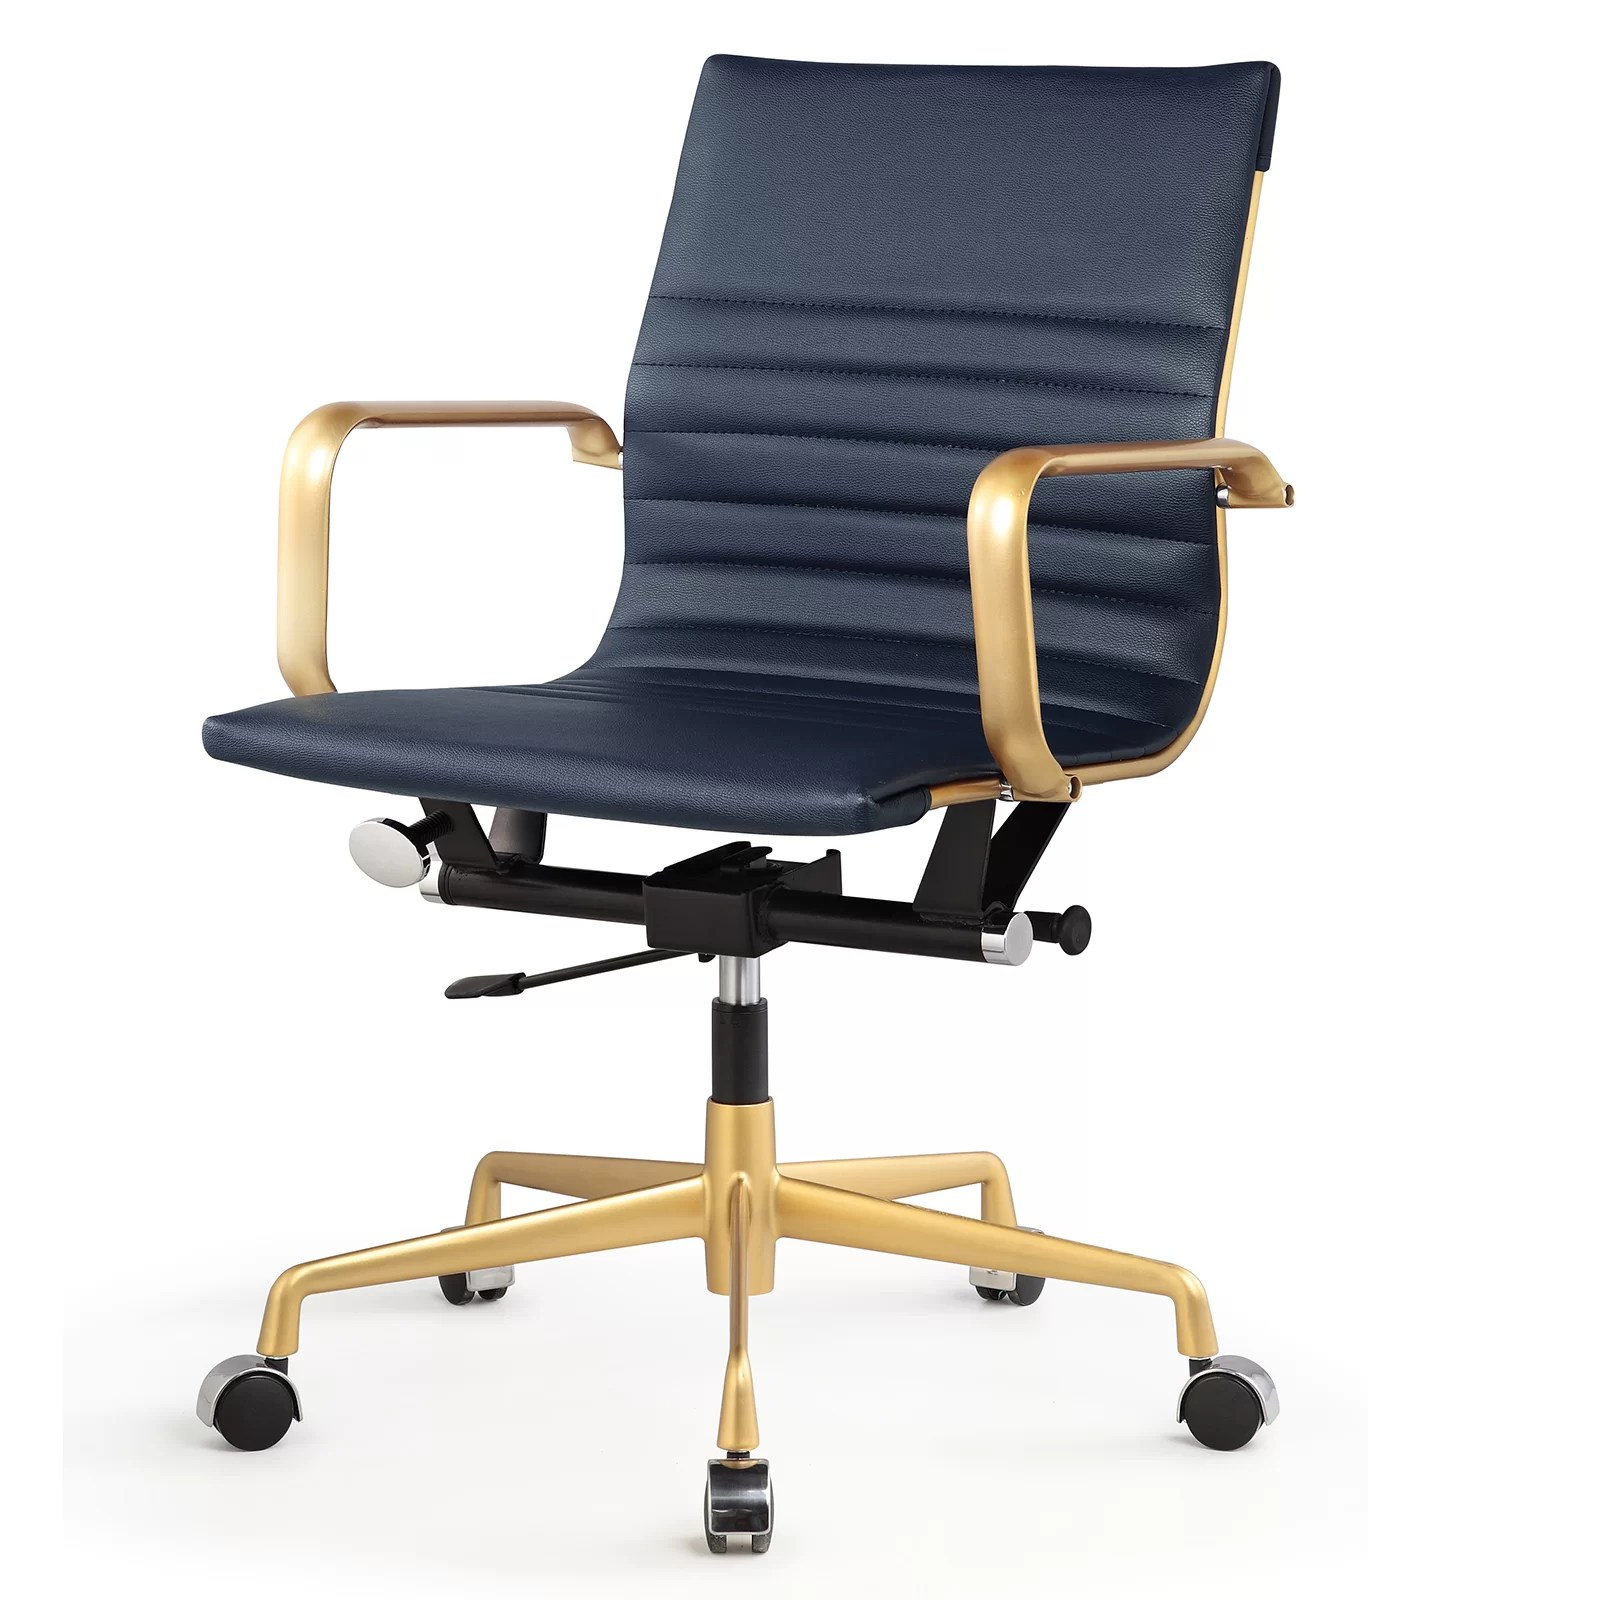 Meelano Vegan Leather MidBack Office Chair with Arms